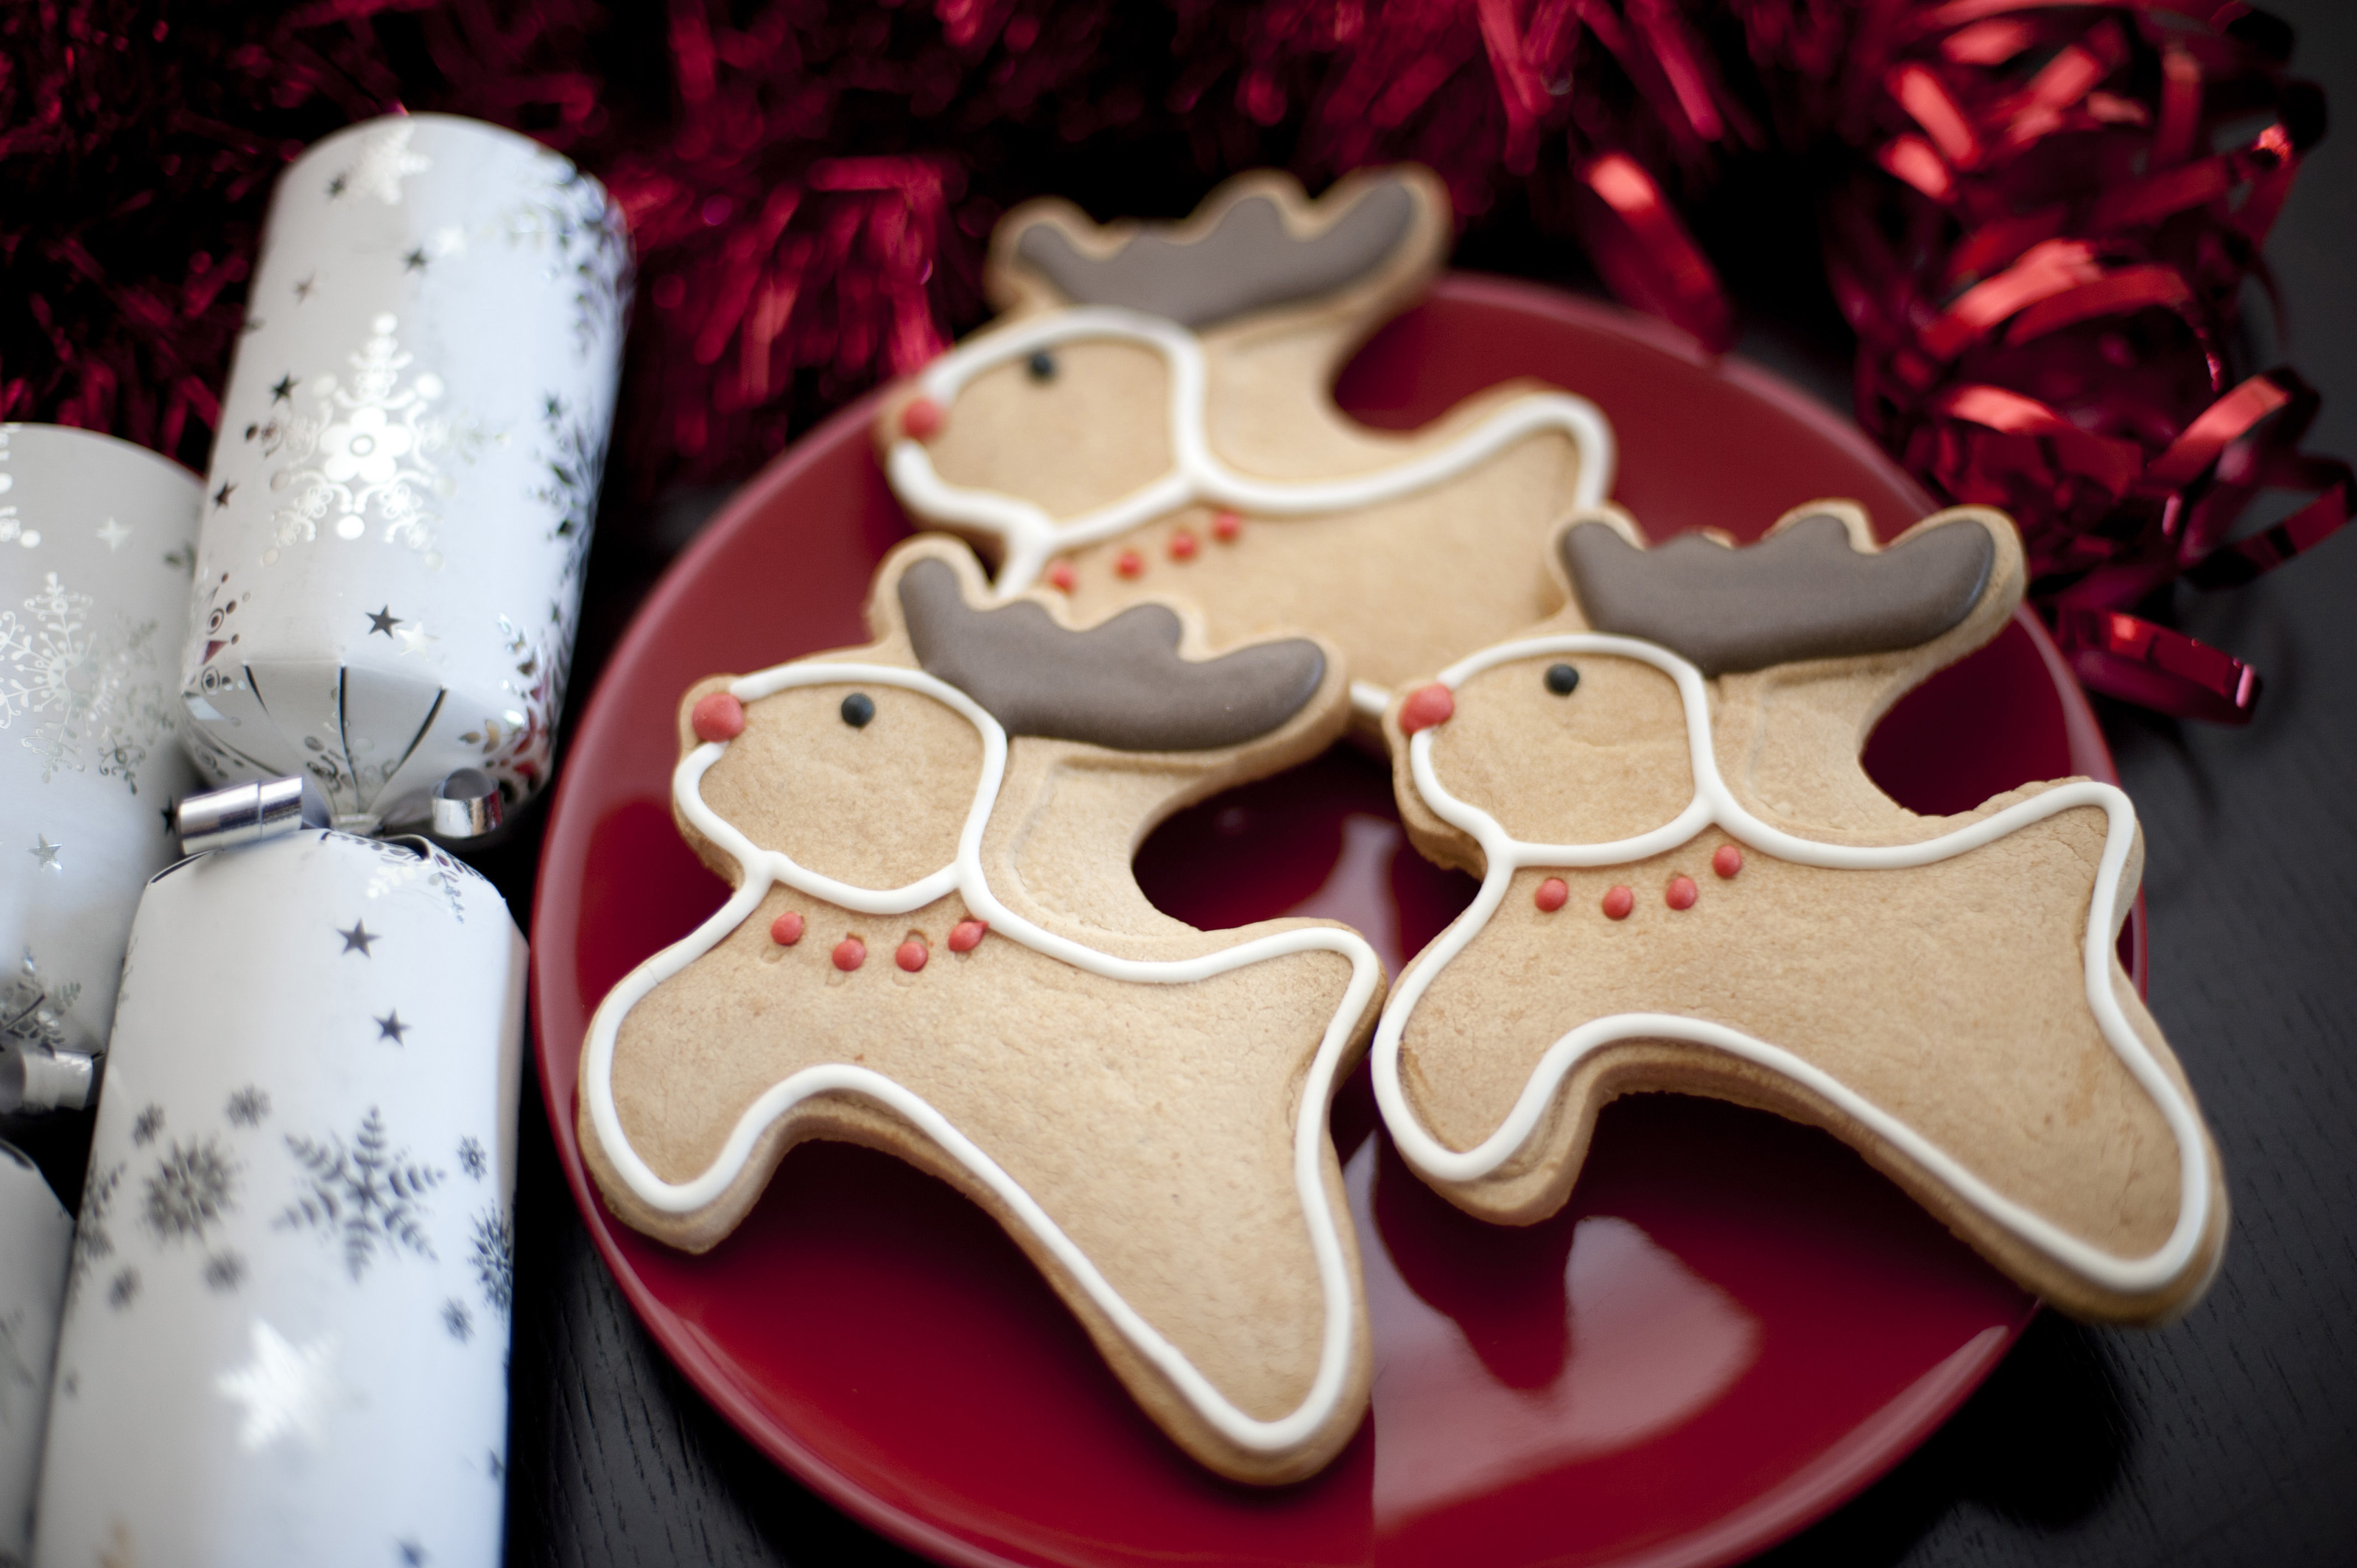 Reindeer Christmas Cookies Or Biscuits 8209 Stockarch Free Stock